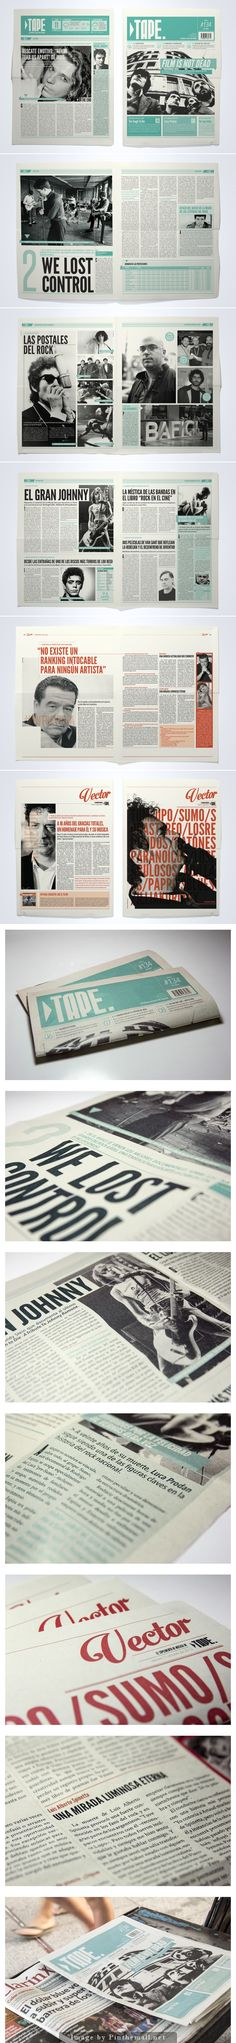 TAPE Newspaper by Juan Ignacio Roldán Nieva #1colourpages #coverheaders #greyscalewithcolour #southamericandesign